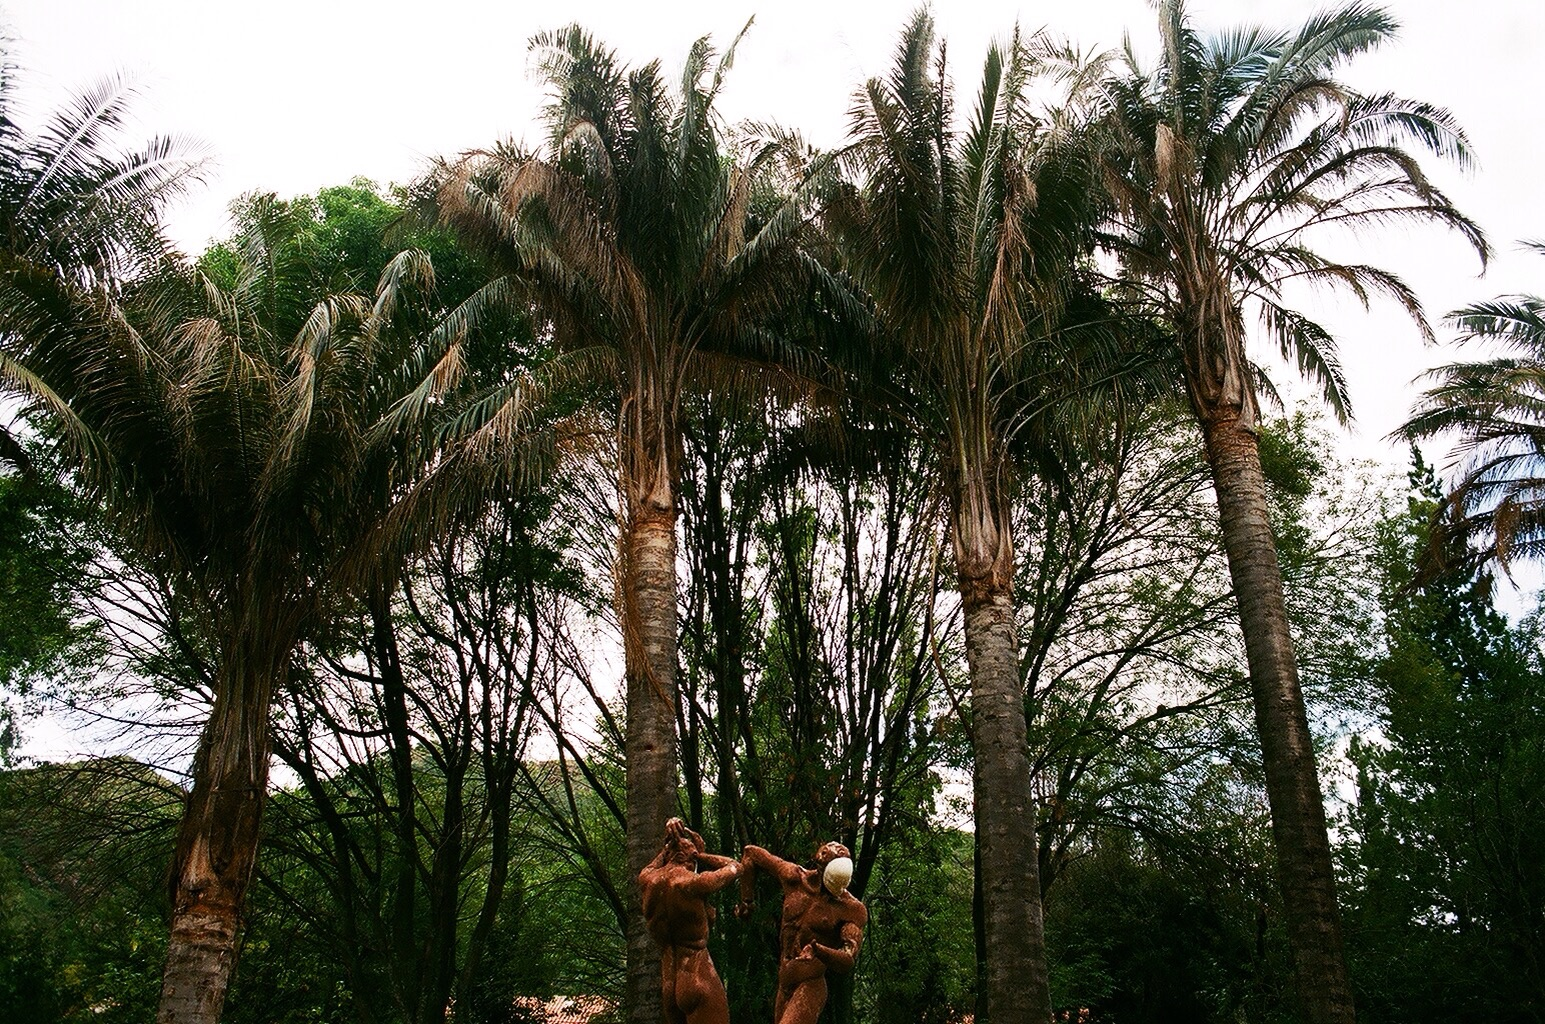 35mm film. taken in the Botanical Gardens of Cochabamba